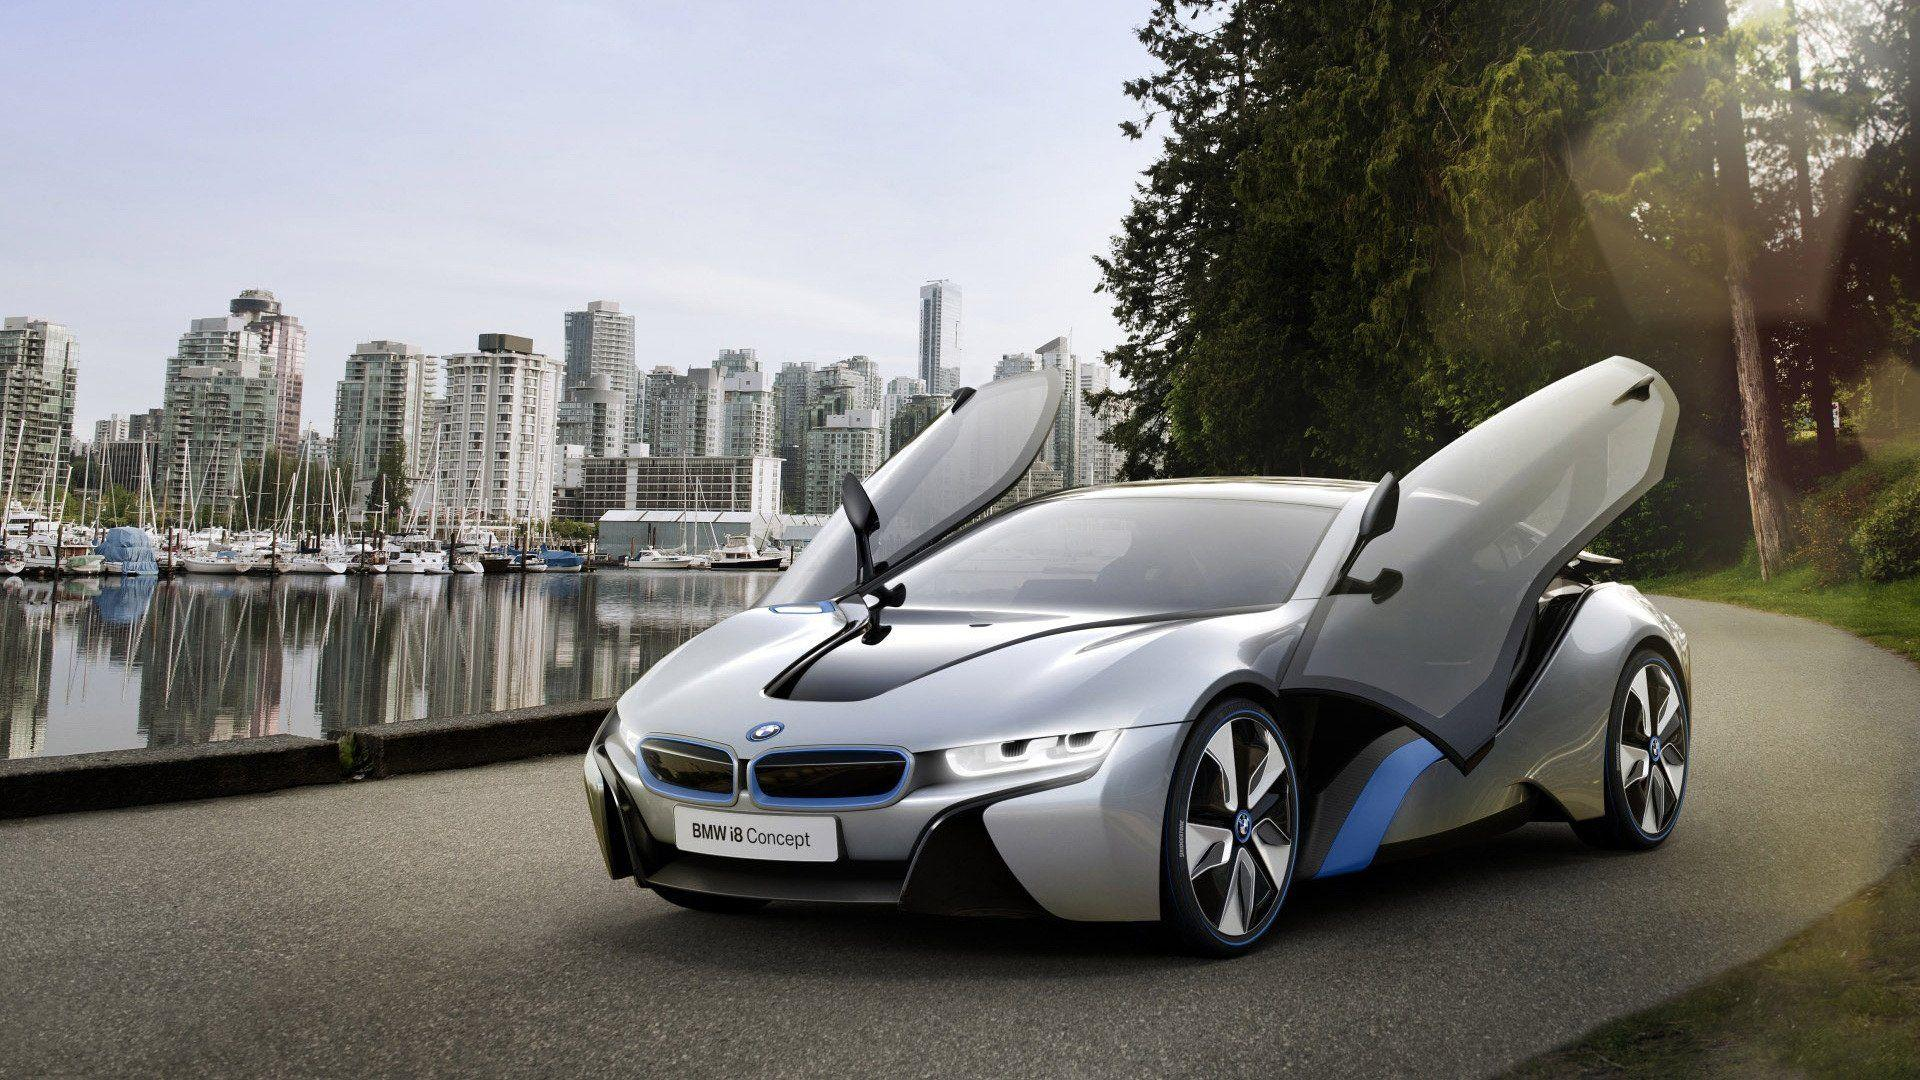 BMW i8 Hybrid Supercar Wallpapers for Desktop 1920x1080 Wallpapers